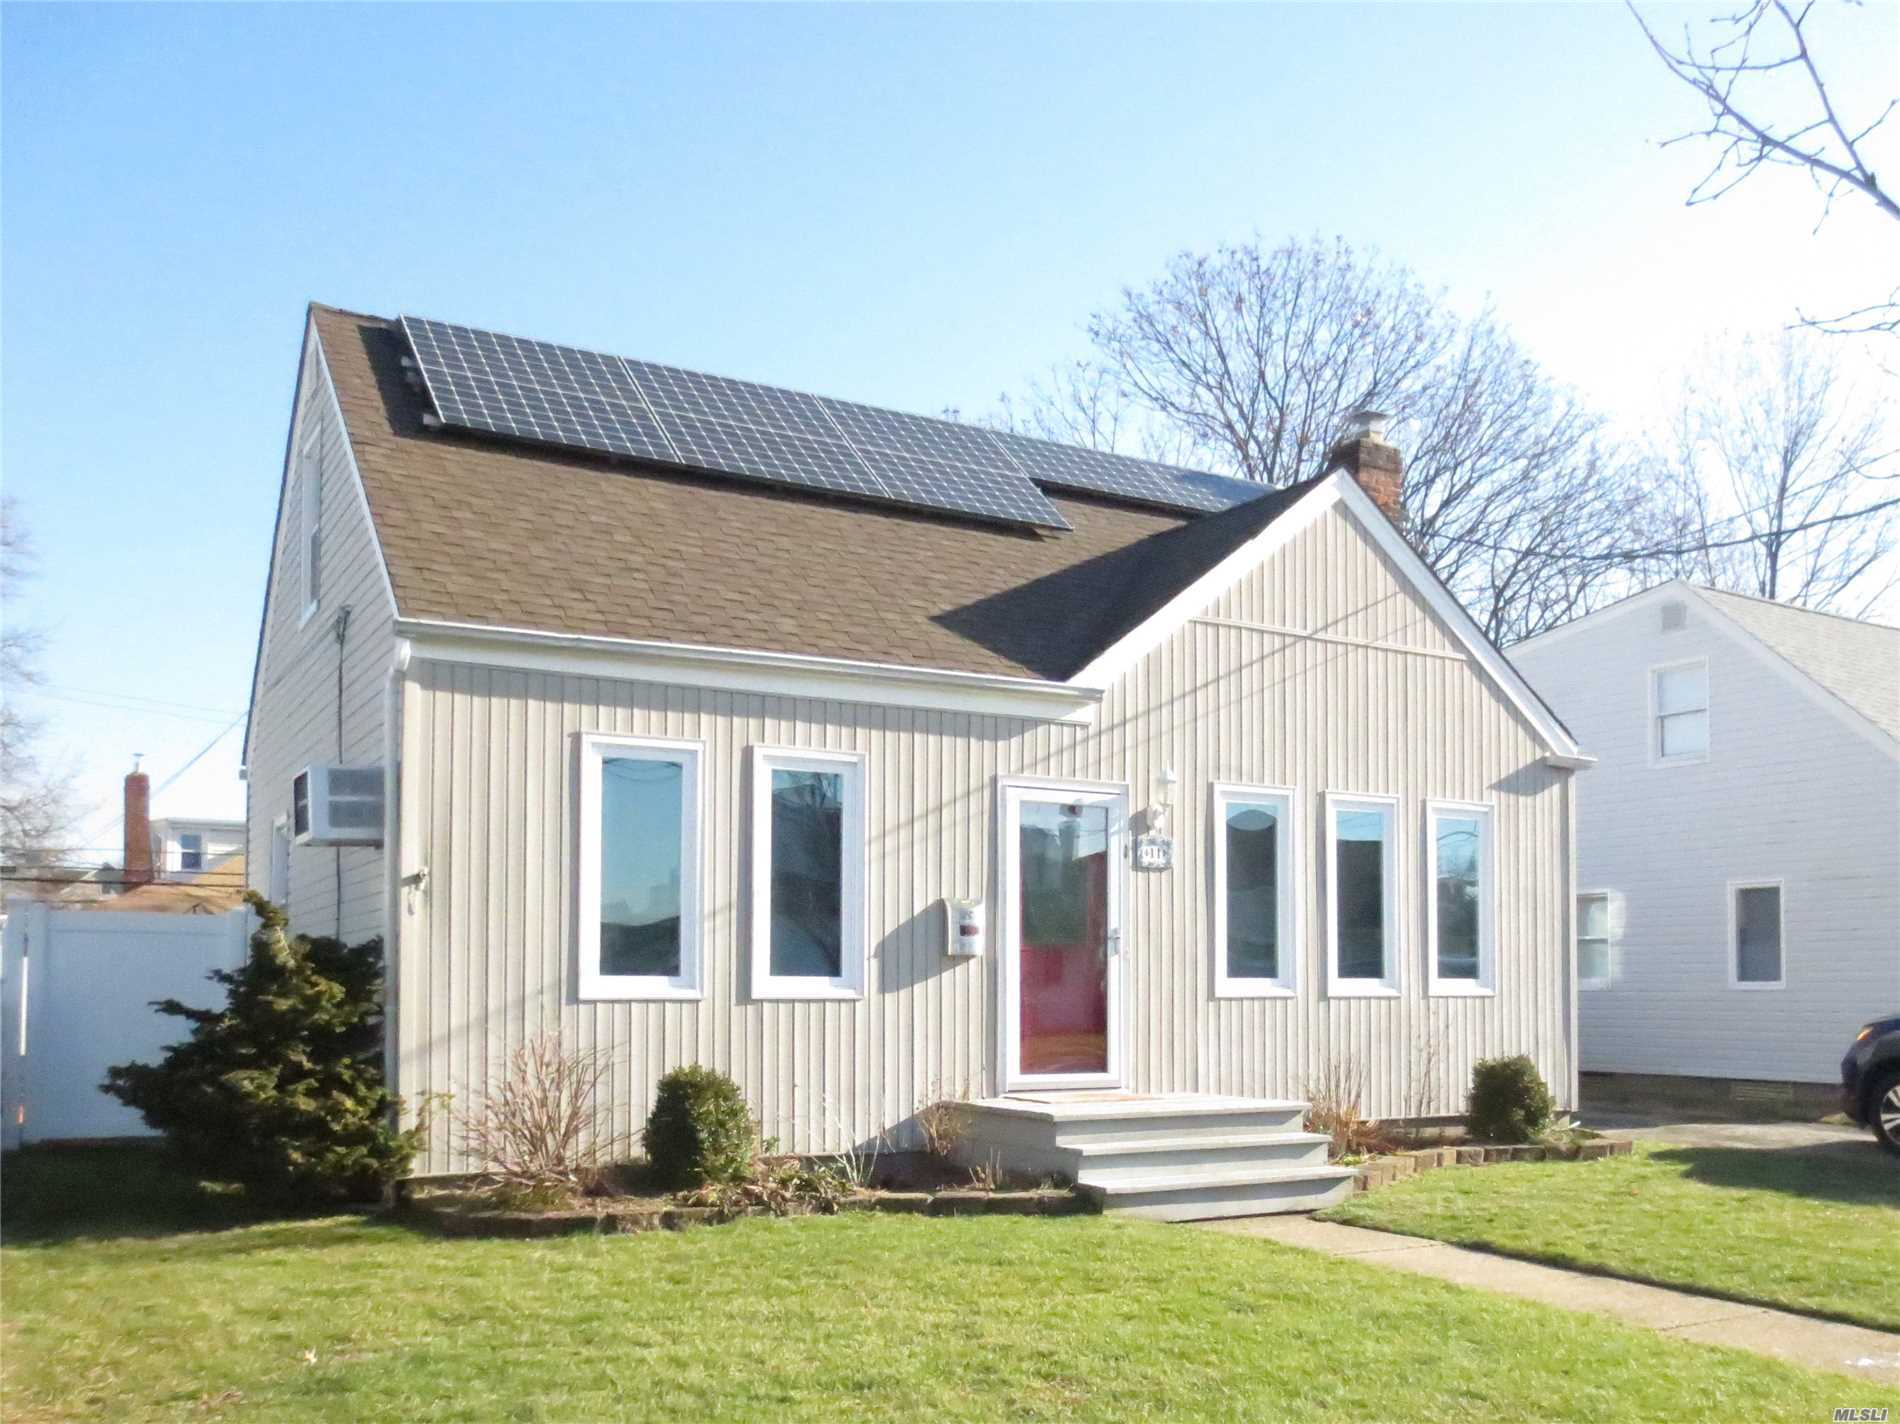 Beautiful Cape Located Mid-Block In South Merrick. New Windows; Updated Throughout: Tank-Less Water Heater, Gas Heat, Roof, Eat-In-Kitchen, Bathroom And Electric; Sliding Doors To Cedar Deck For Entertaining With Gas Line To Barbque; Fenced Property; Solar Panels (Owned) Close To Shops, Houses Of Worship, Parkways; Just Unpack And Move In! Owner Pays $604 Yearly For Flood Insurance; Low Taxes $7201, 80 With Star!! Lakeside Elementary, Kennedy High School.